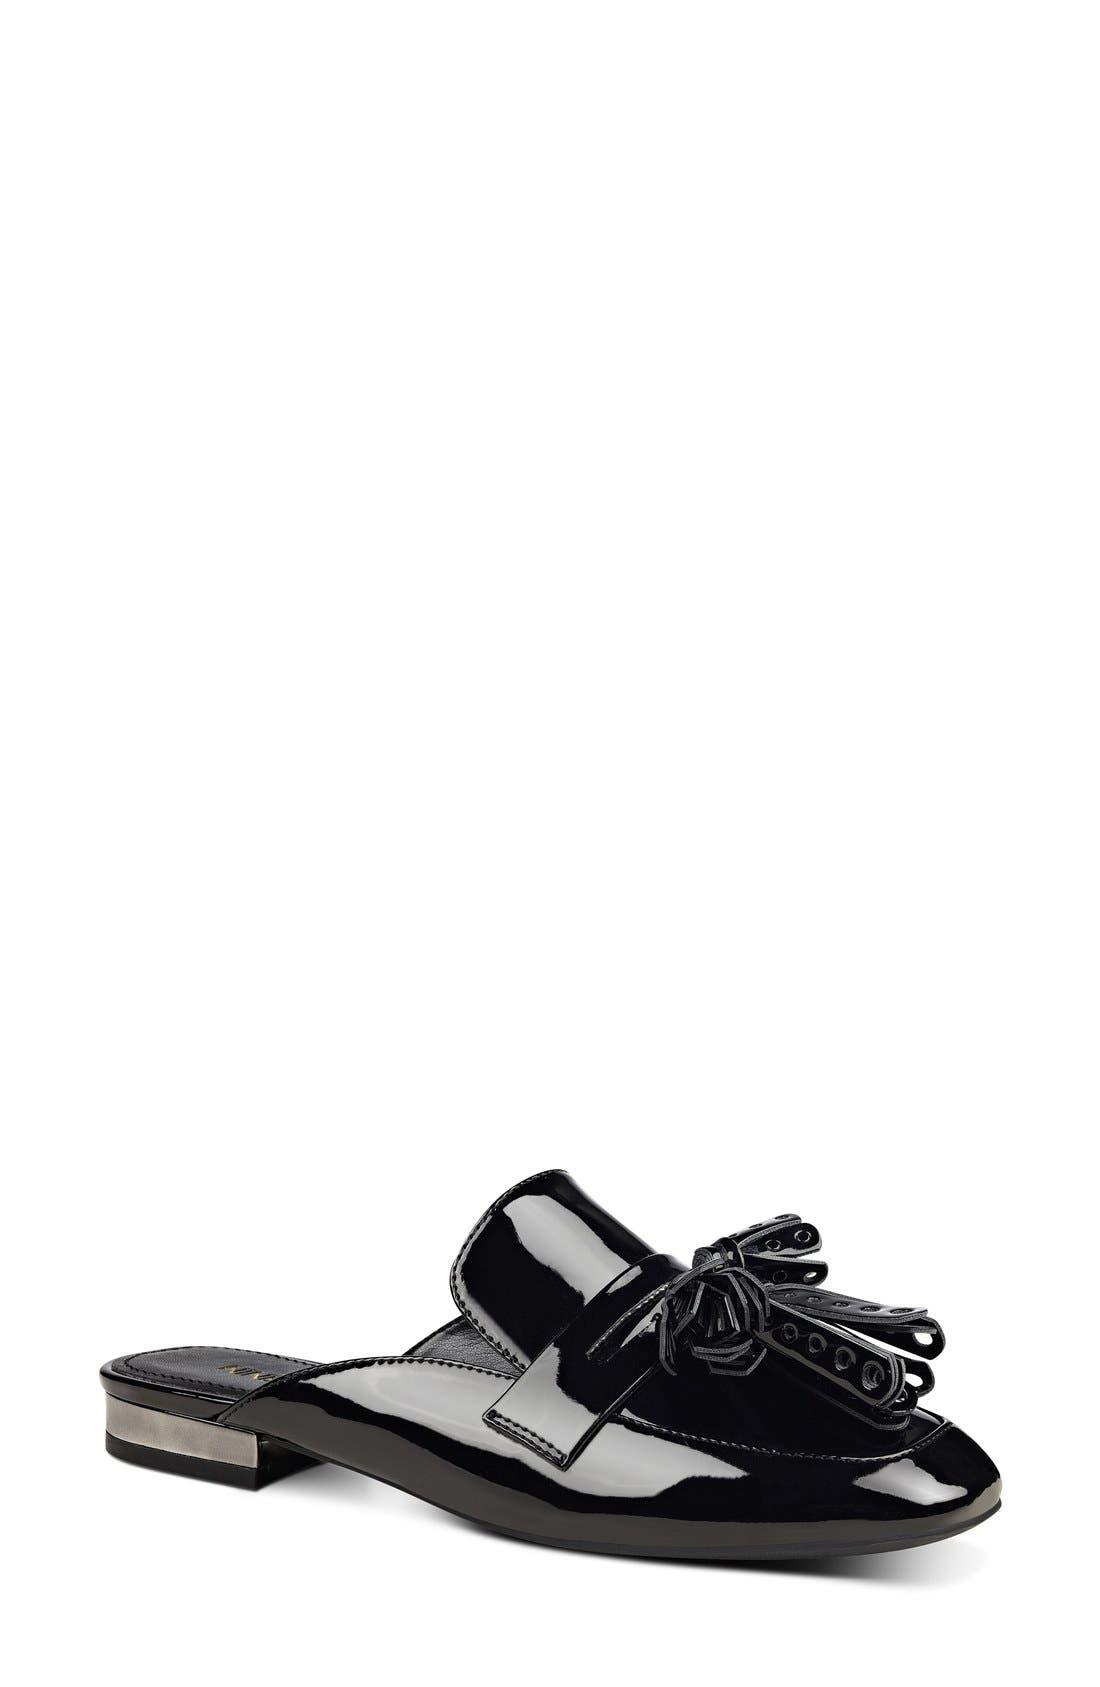 Main Image - Nine West 'Xenisa' Flat Loafer Mule (Women)